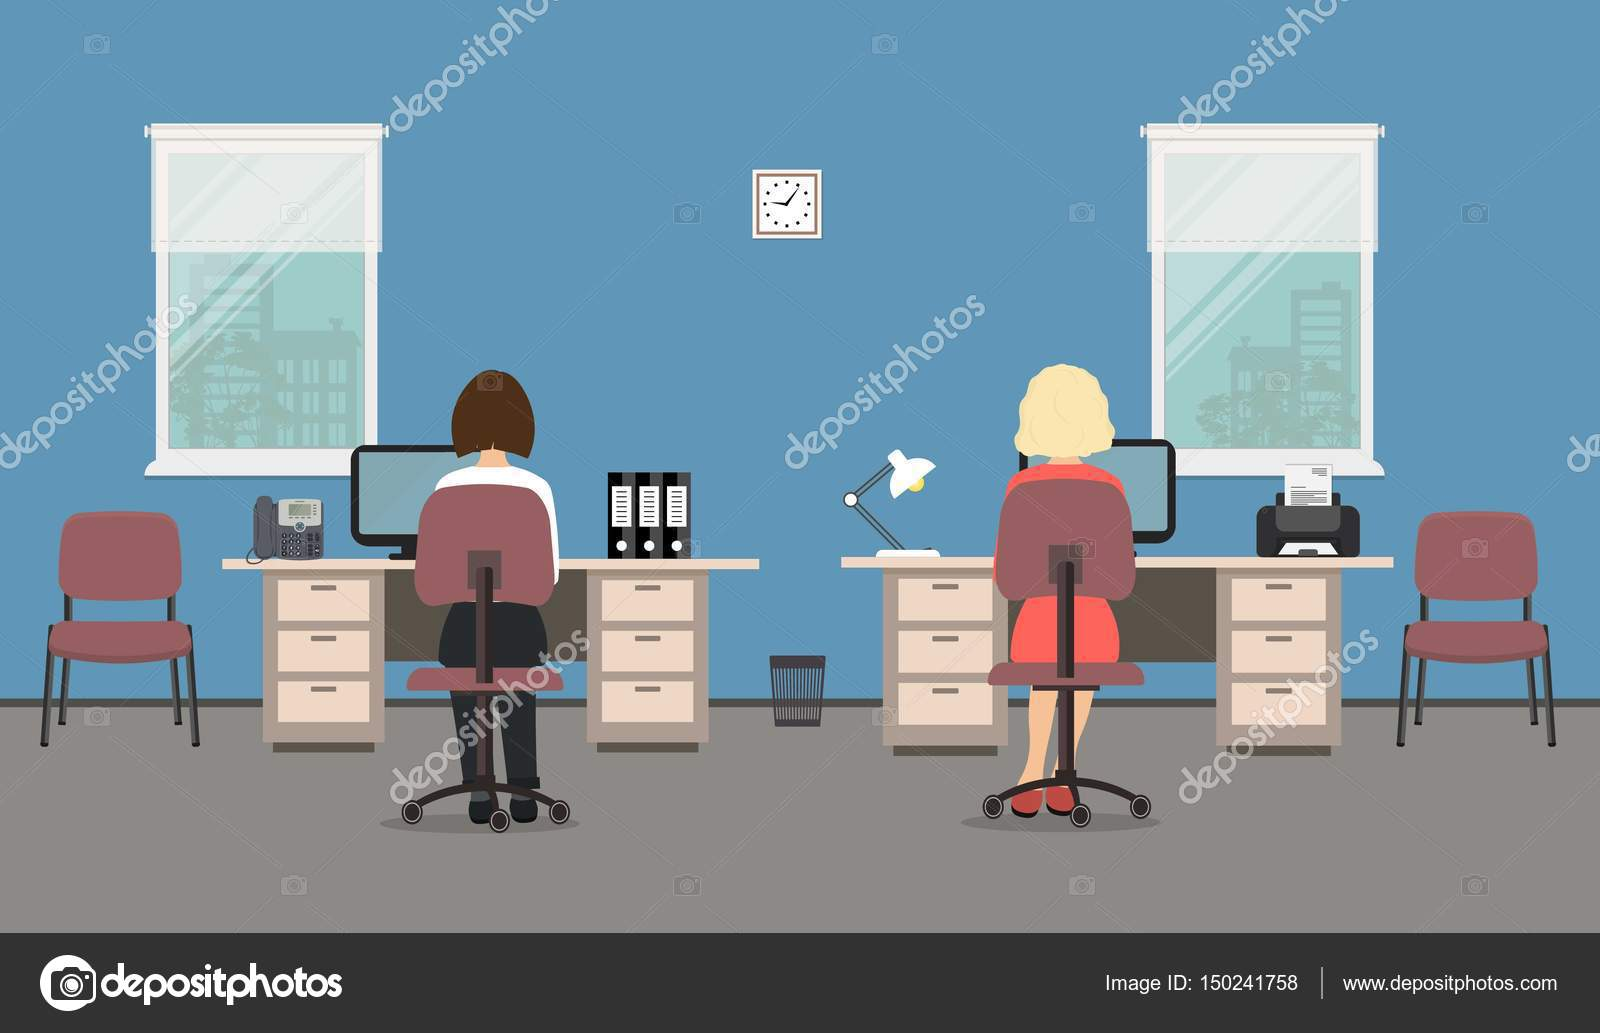 Two Women Are Employees At Work They Sitting Desks There Tables And Chairs On A Windows Background In The Picture